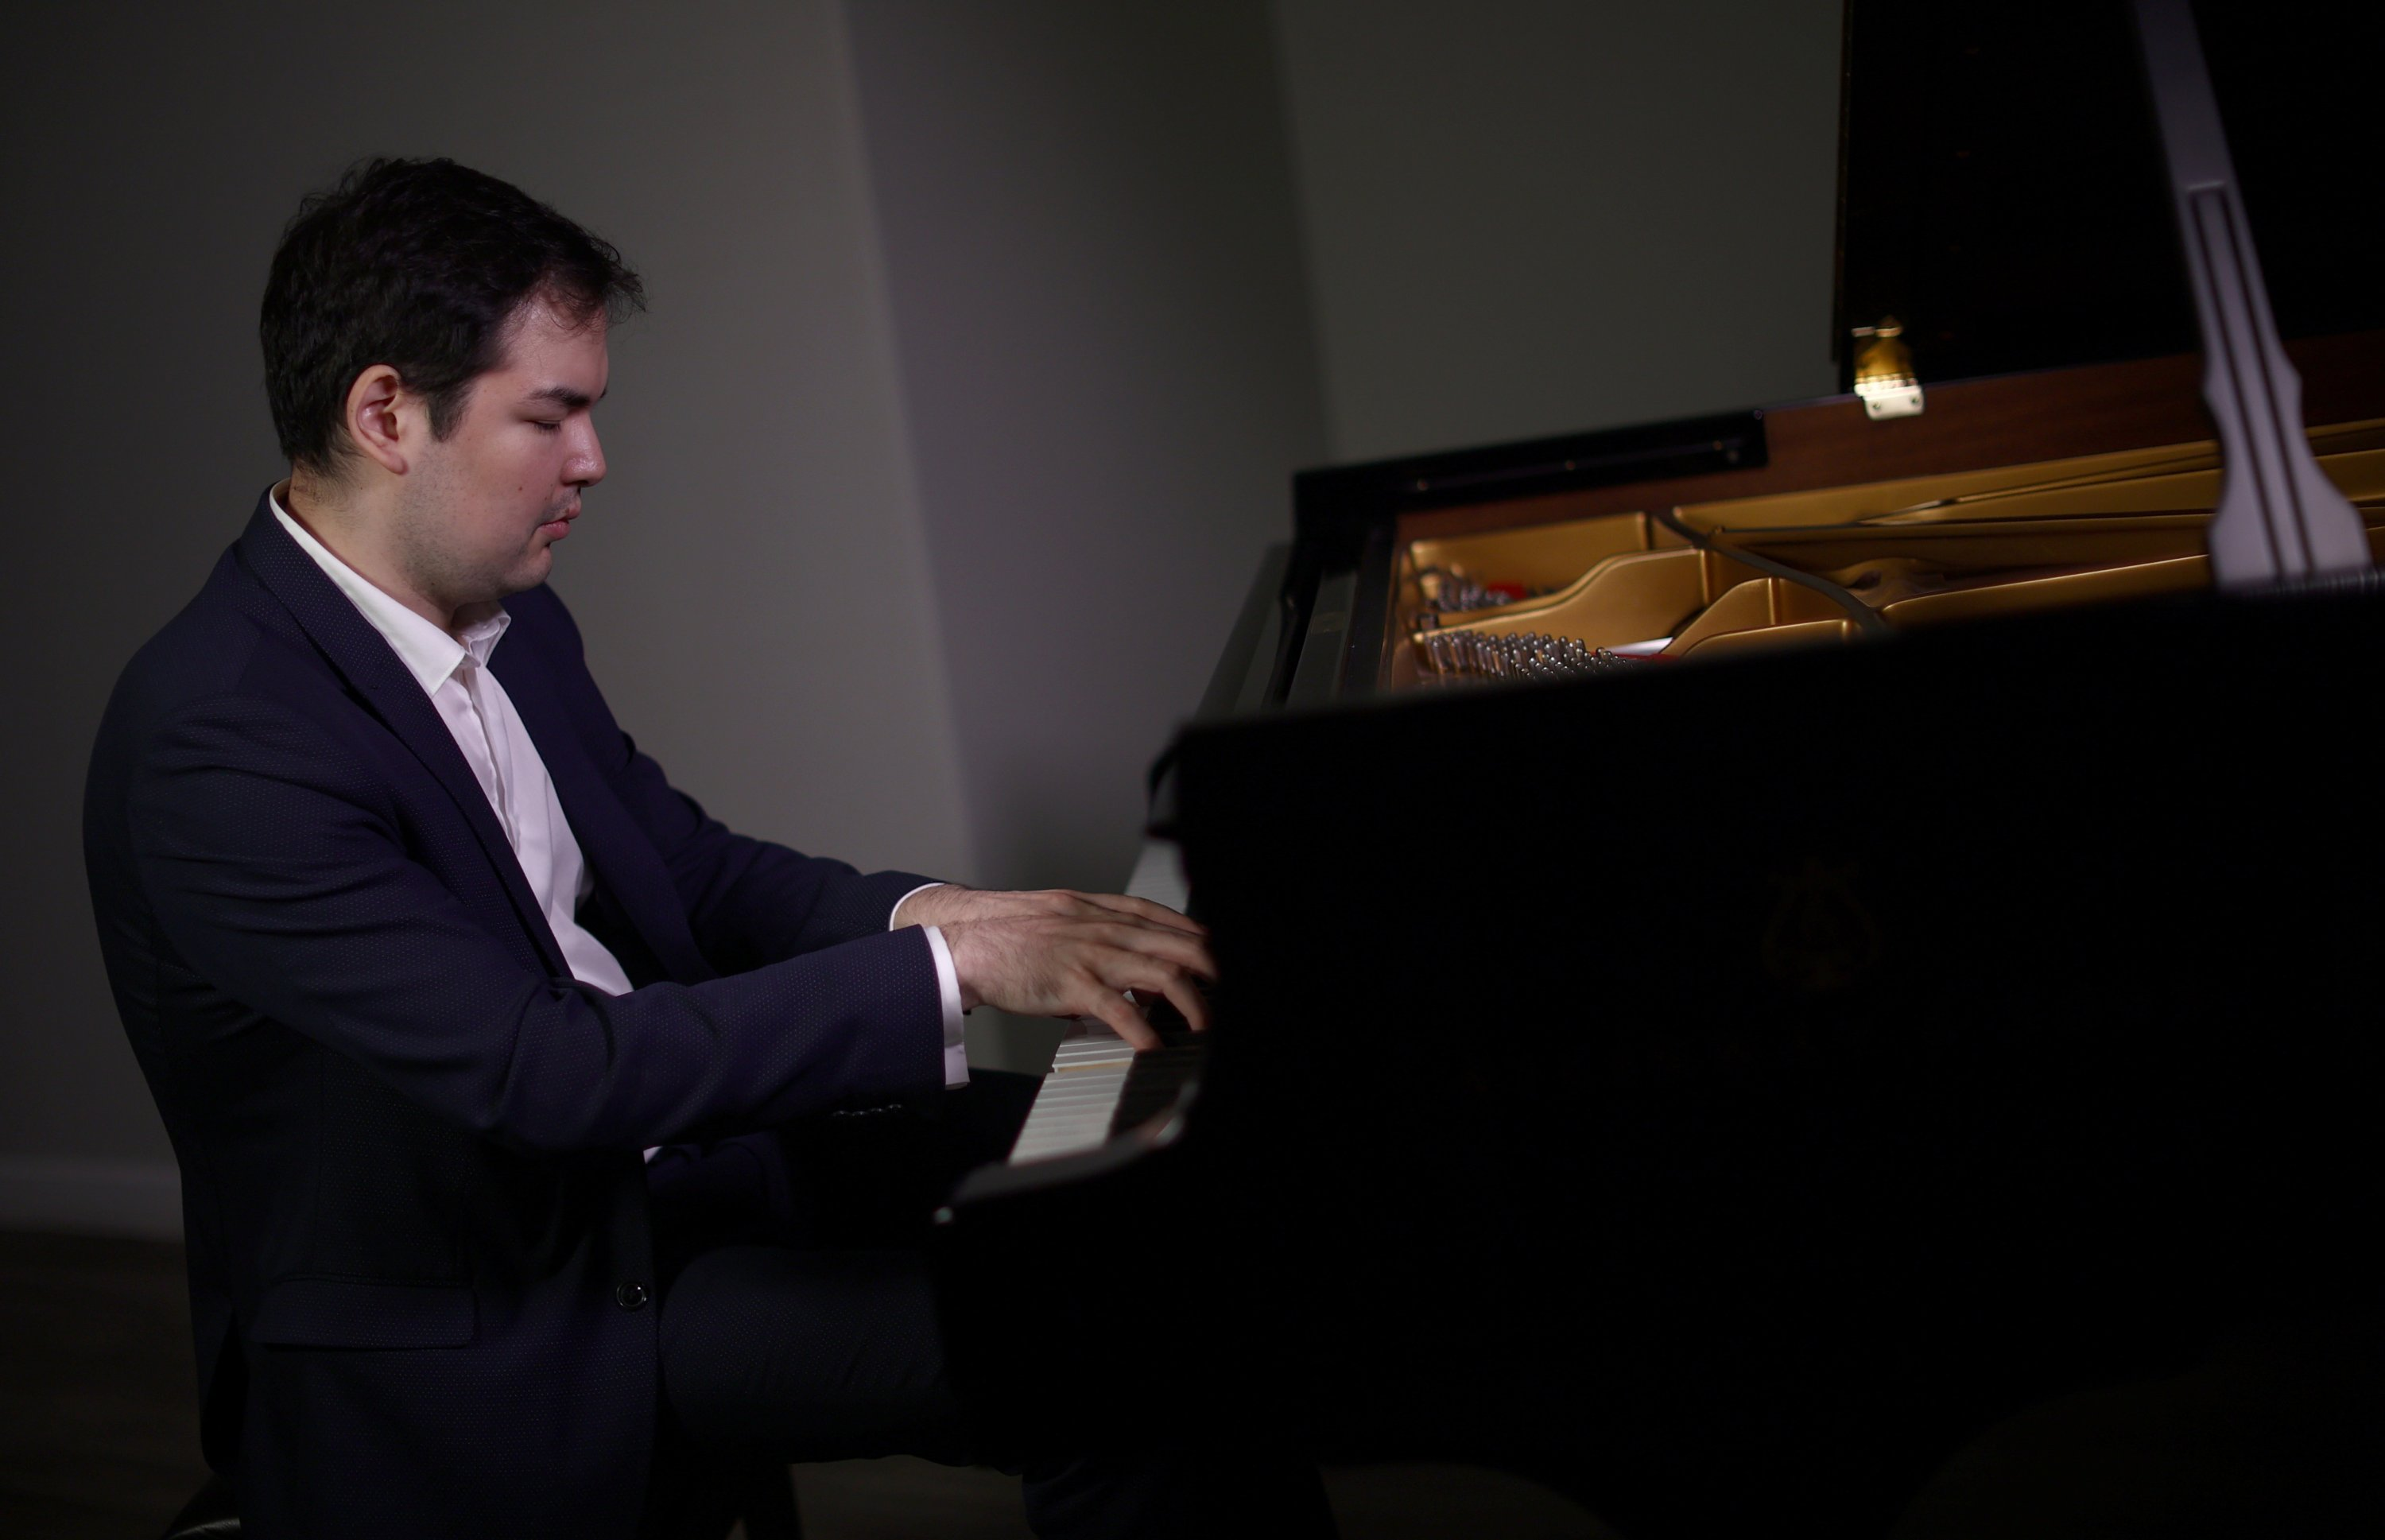 Kazakh pianist Alim Beysembayev plays the piano at Steinway Hall in London, the U.K., Sept. 20, 2021. (Reuters Photo)